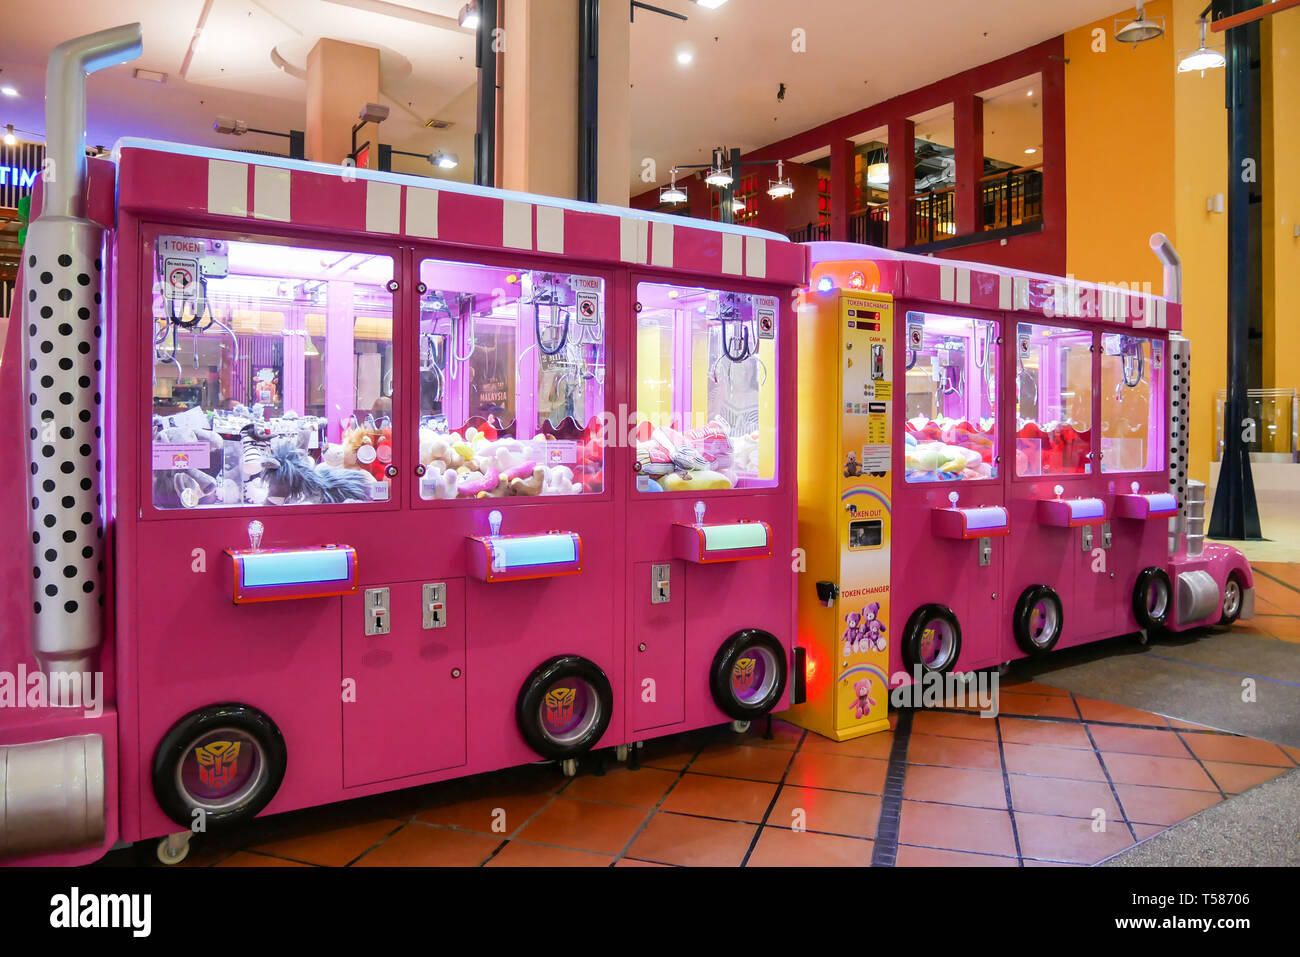 Kuala Lumpur,Malaysia - April 13,2019 : Colorful arcade game toy claw crane machine where people can win toys and other prizes which is located in the - Stock Image